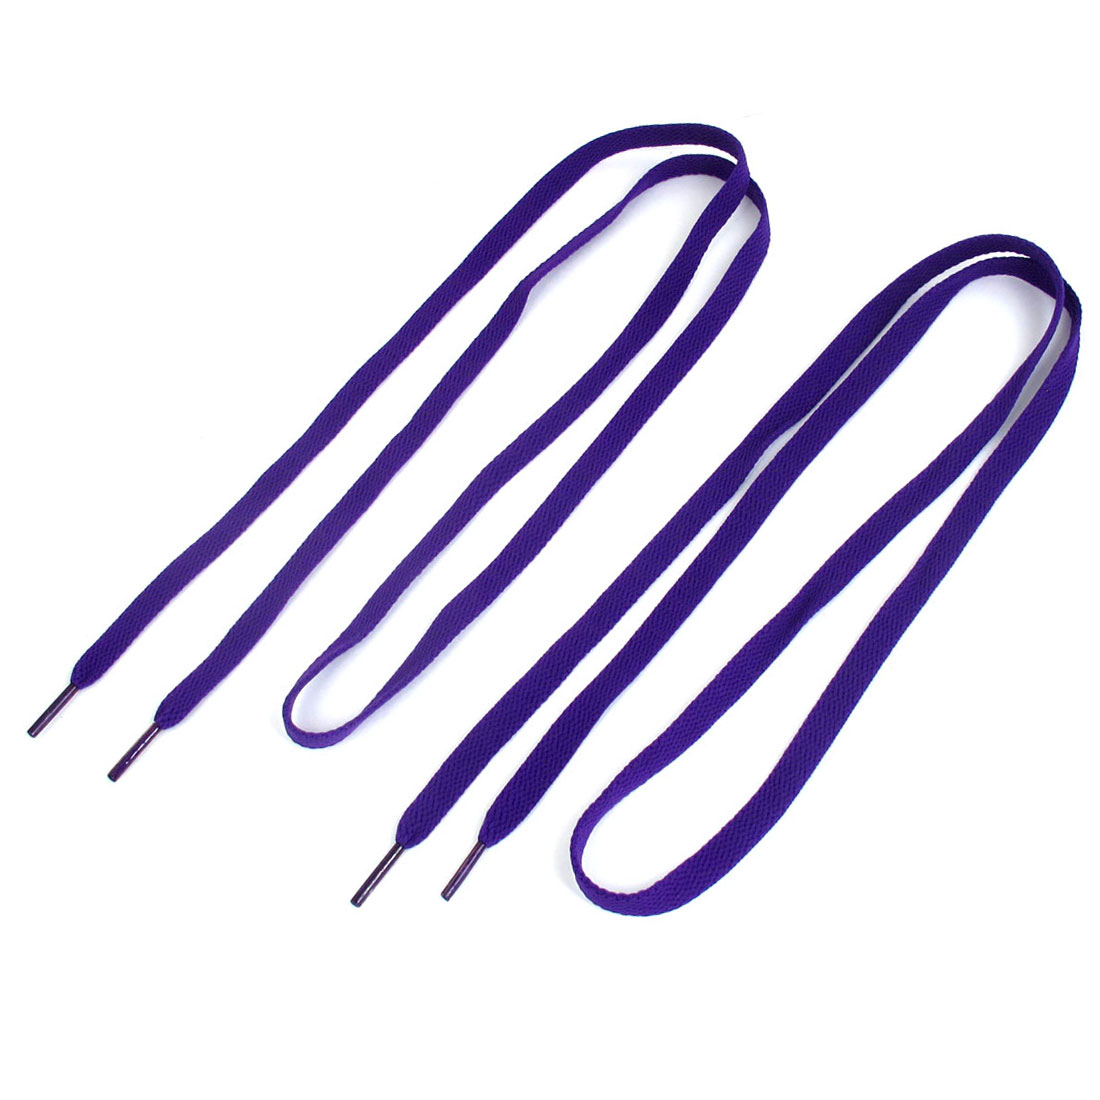 Pair Purple Nylon Flat Cord Shoe Laces Shoelaces Shoestring for Sneakers Sports Shoes